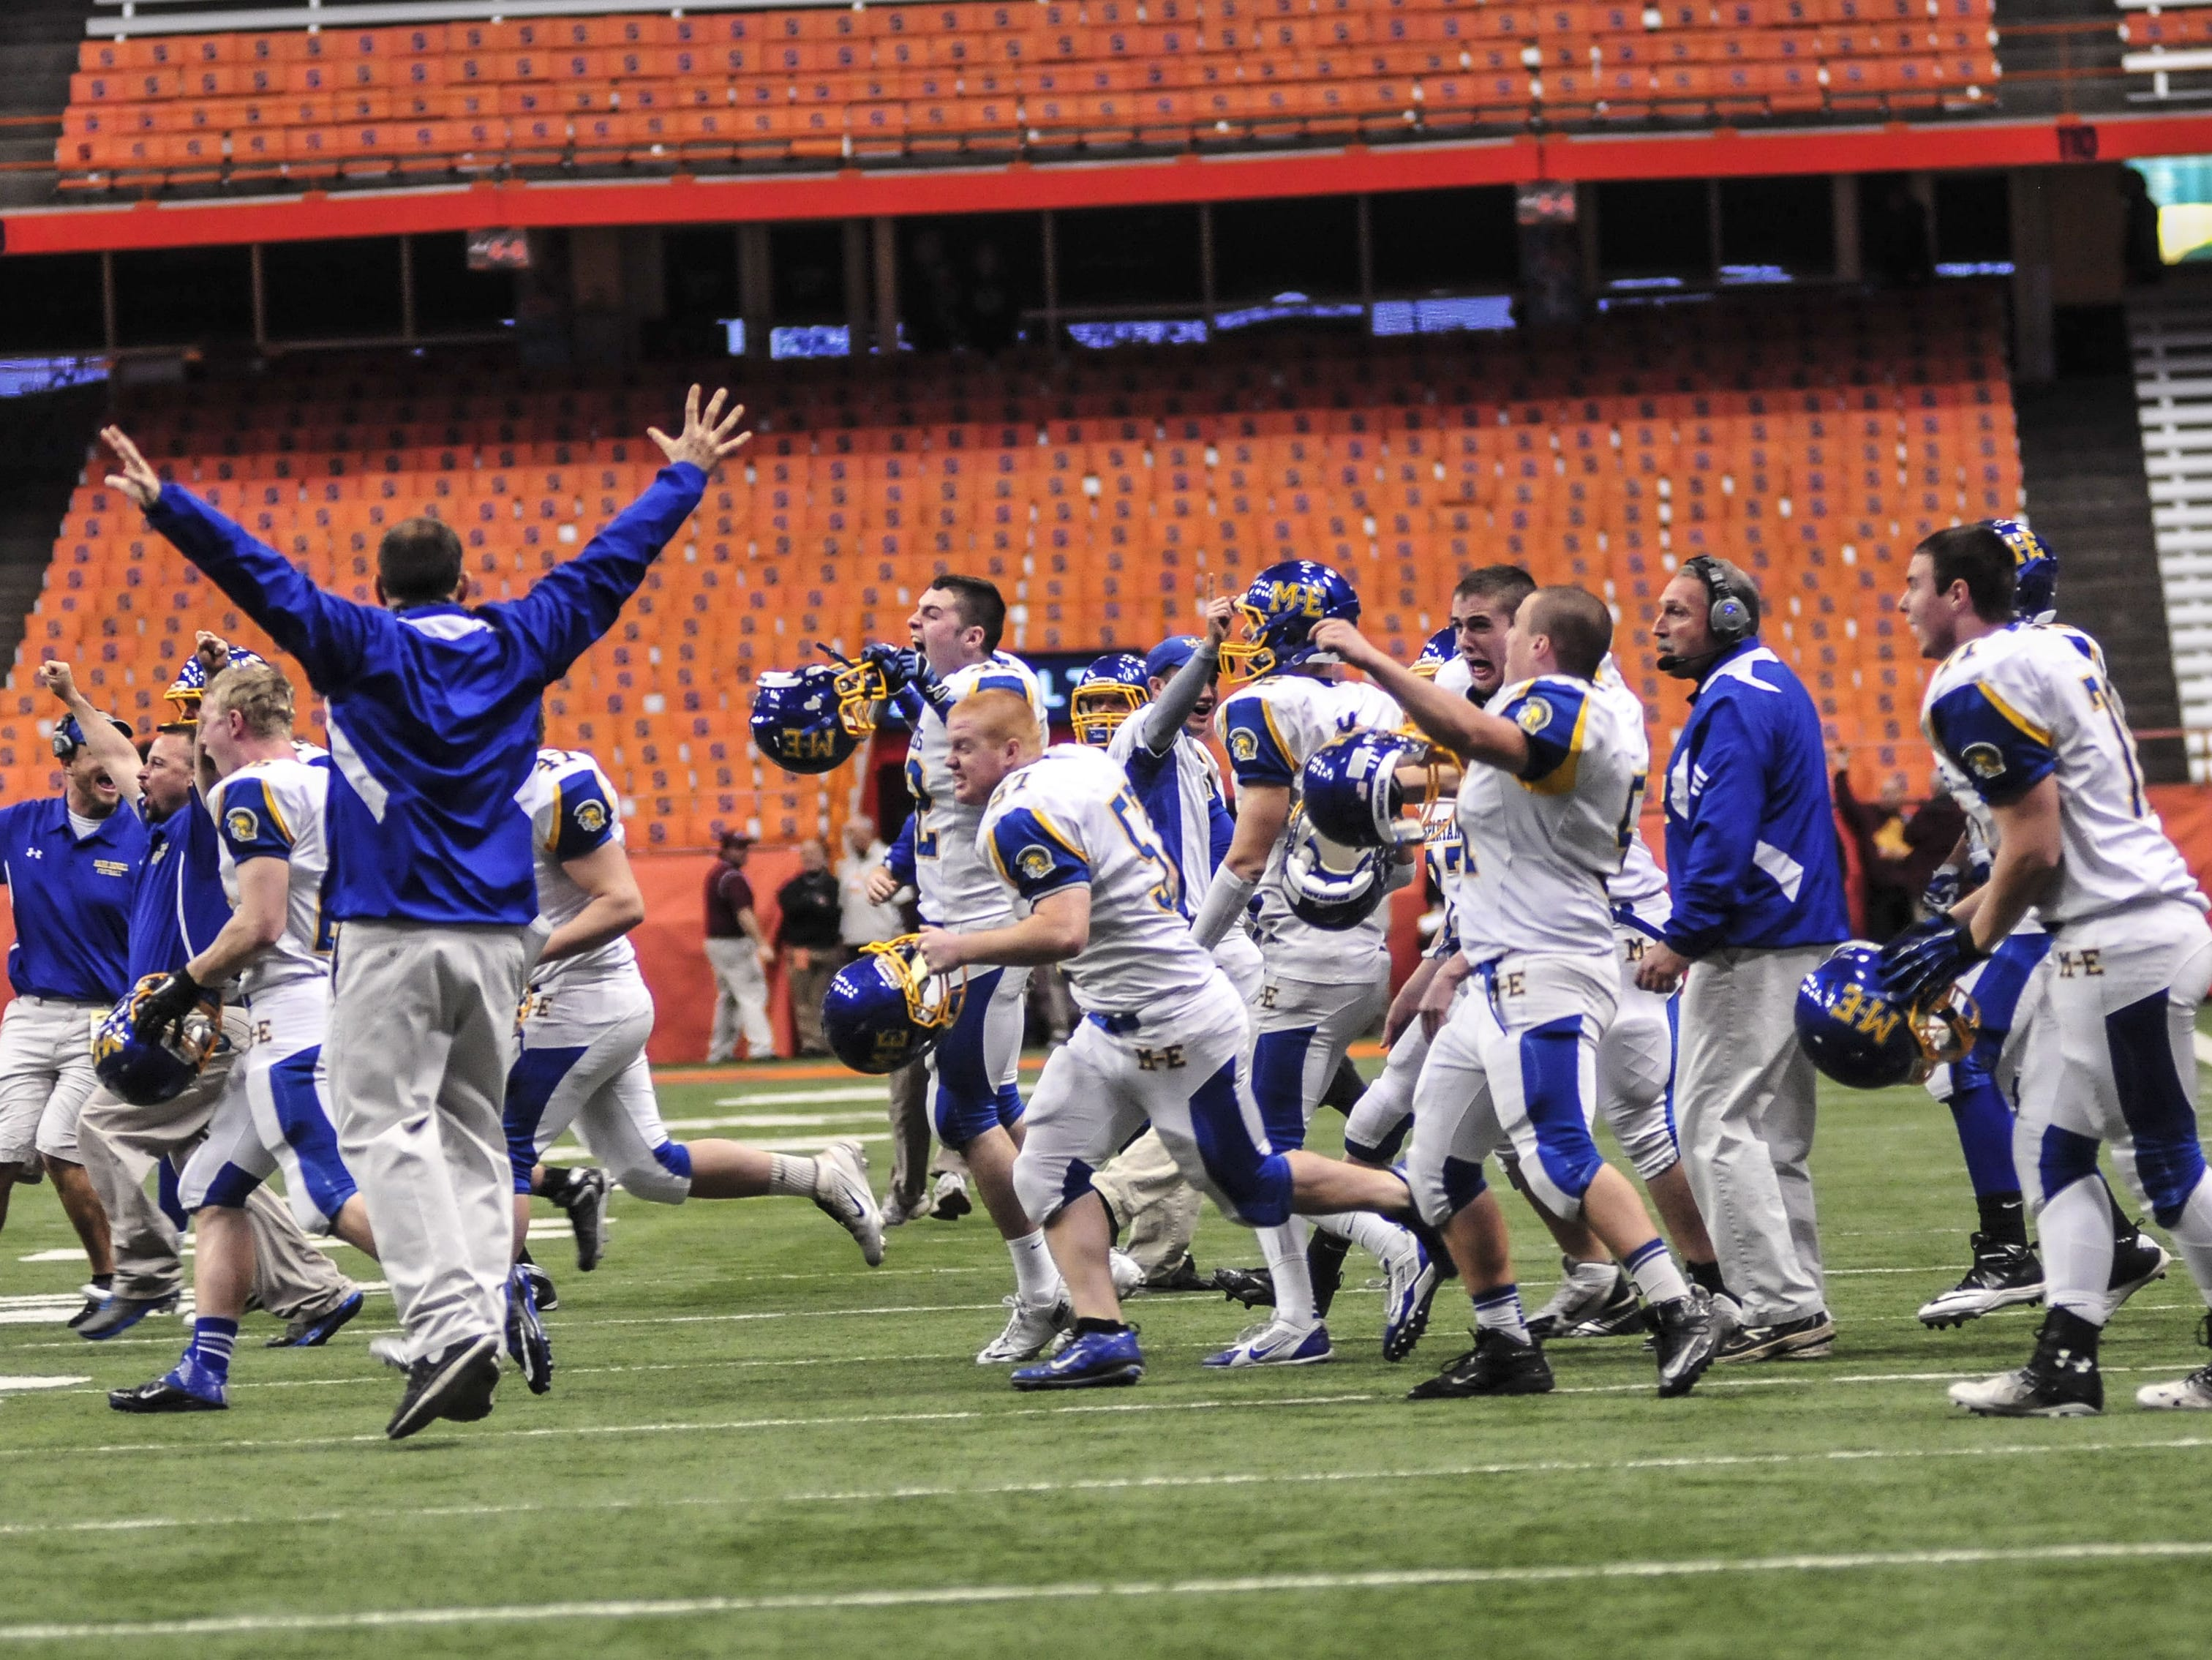 Members of the Maine-Endwell football team charges the field after a two-point conversion late in the fourth quarter against Schalmont during the 2013 New York State Public High School Athletic Association Football Class B Championship at the Carrier Dome.